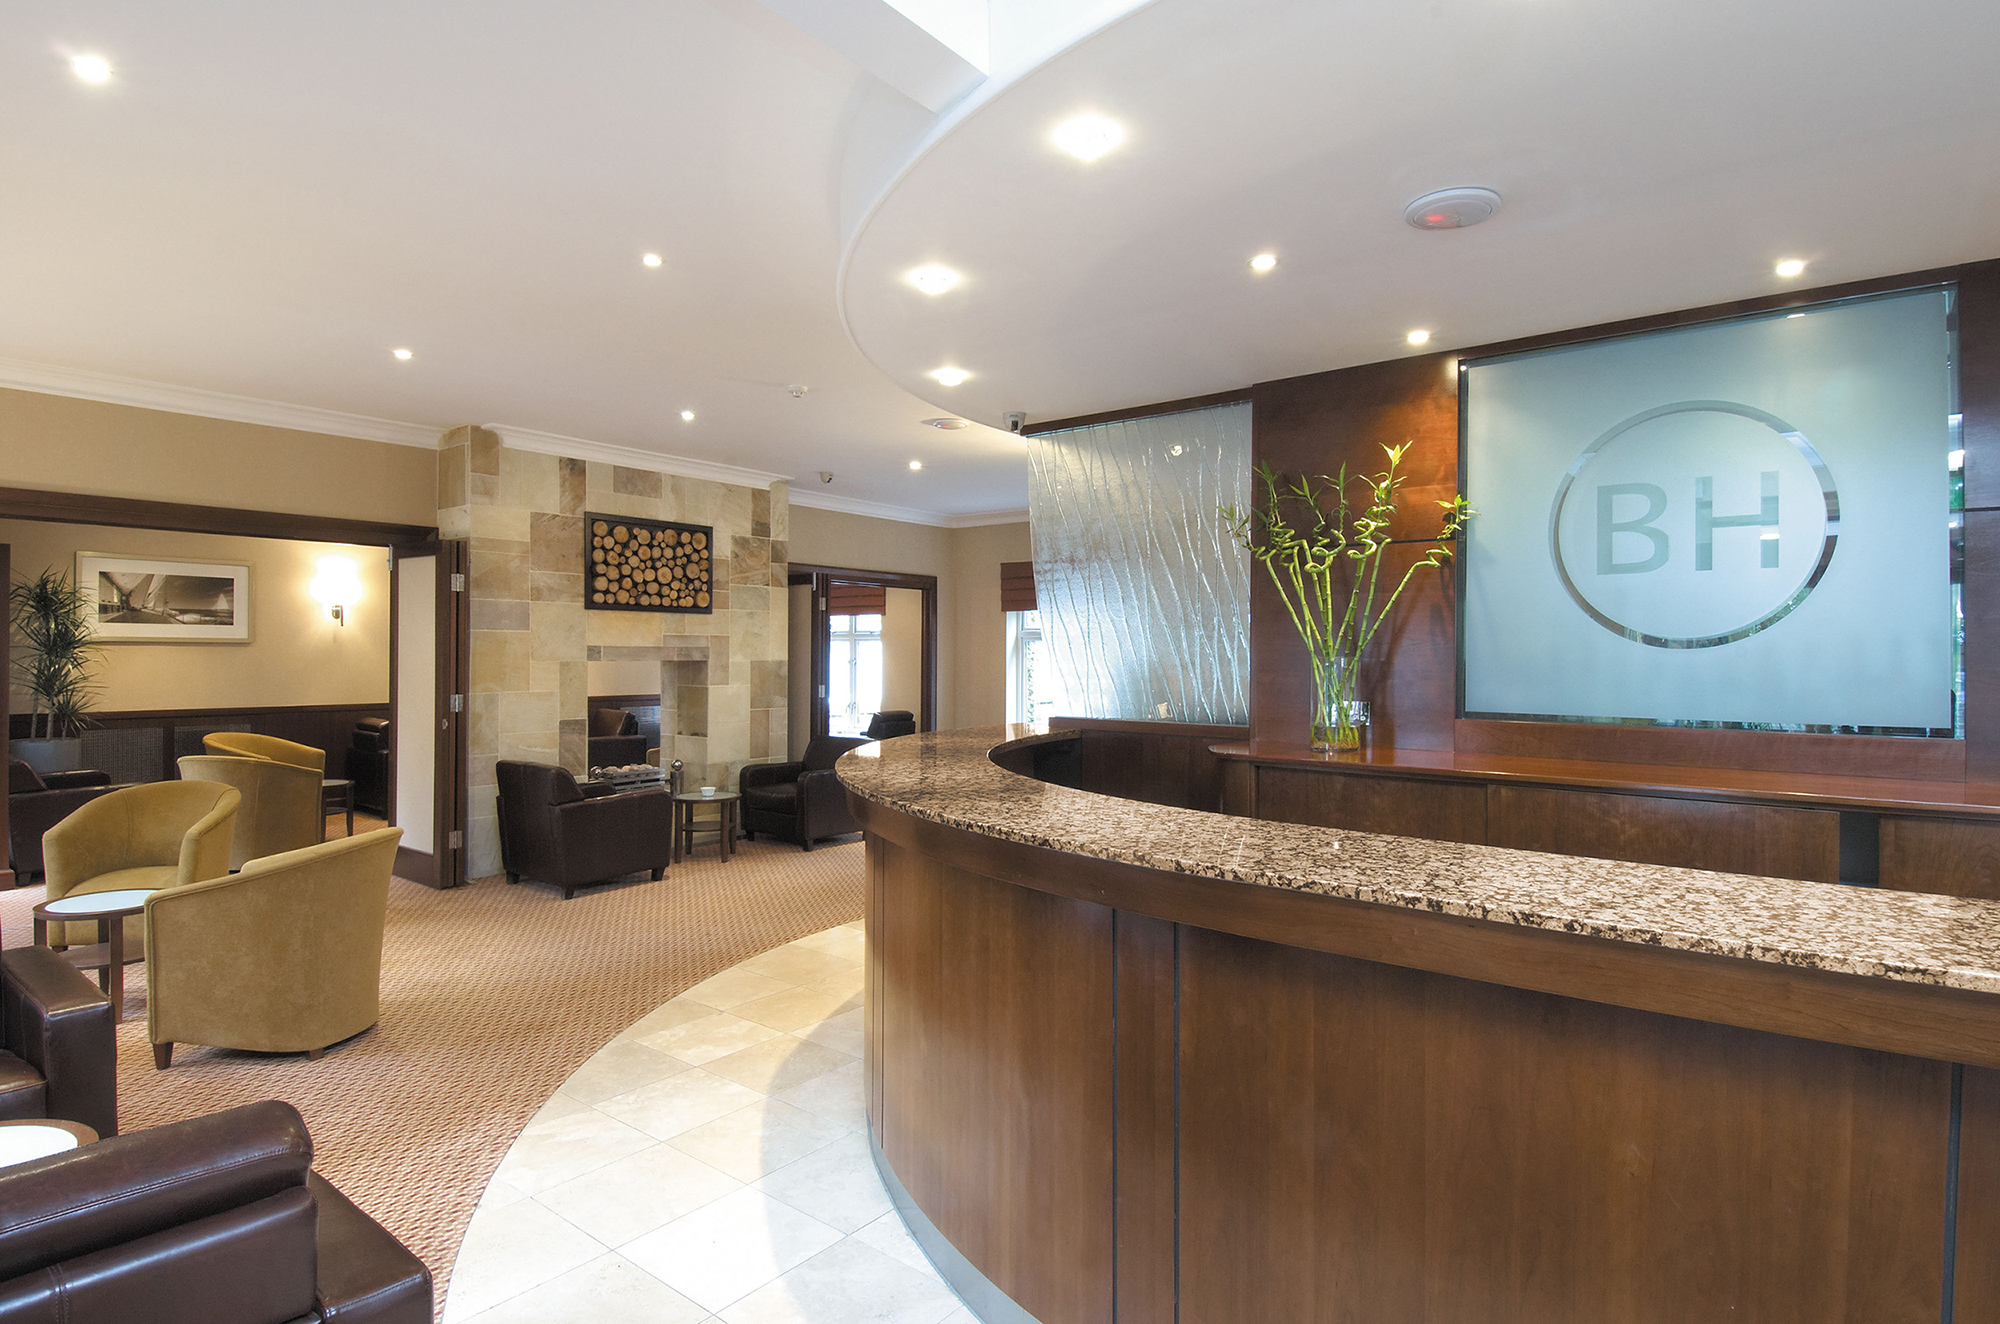 walls were removed to open up the space which features an art deco inspired reception bar unit specially designed carpet travertine flooring and an open - Travertine Hotel 2015